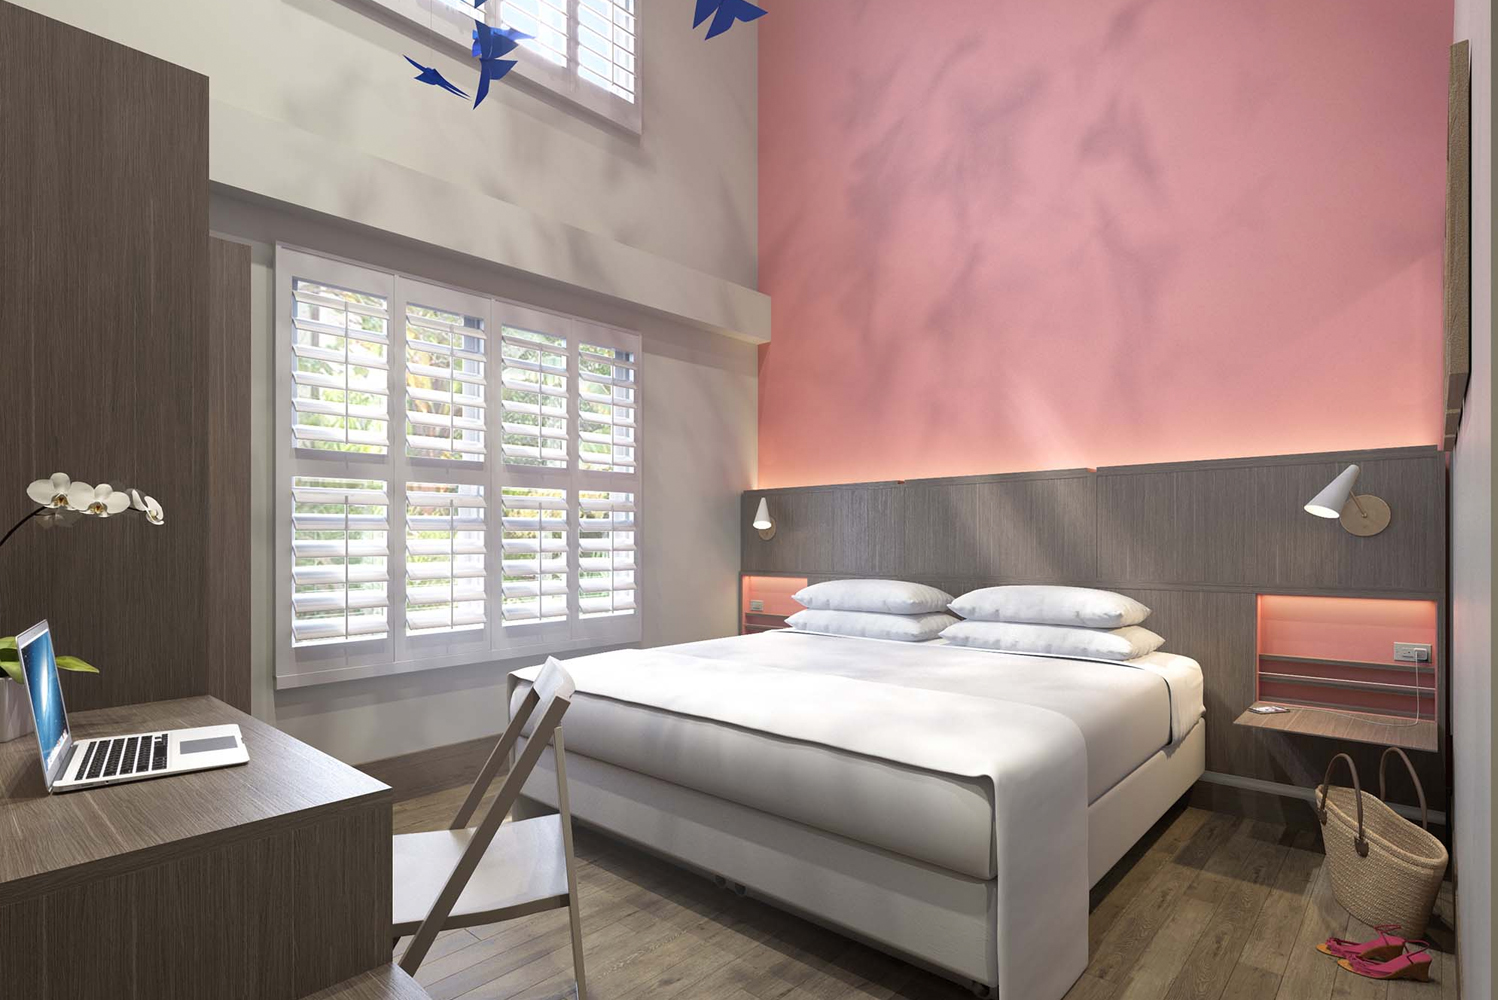 The Julia has 29 guestrooms, each with memory-foam mattresses, custom-designed furnishings, as well as coral and grey accent colors.